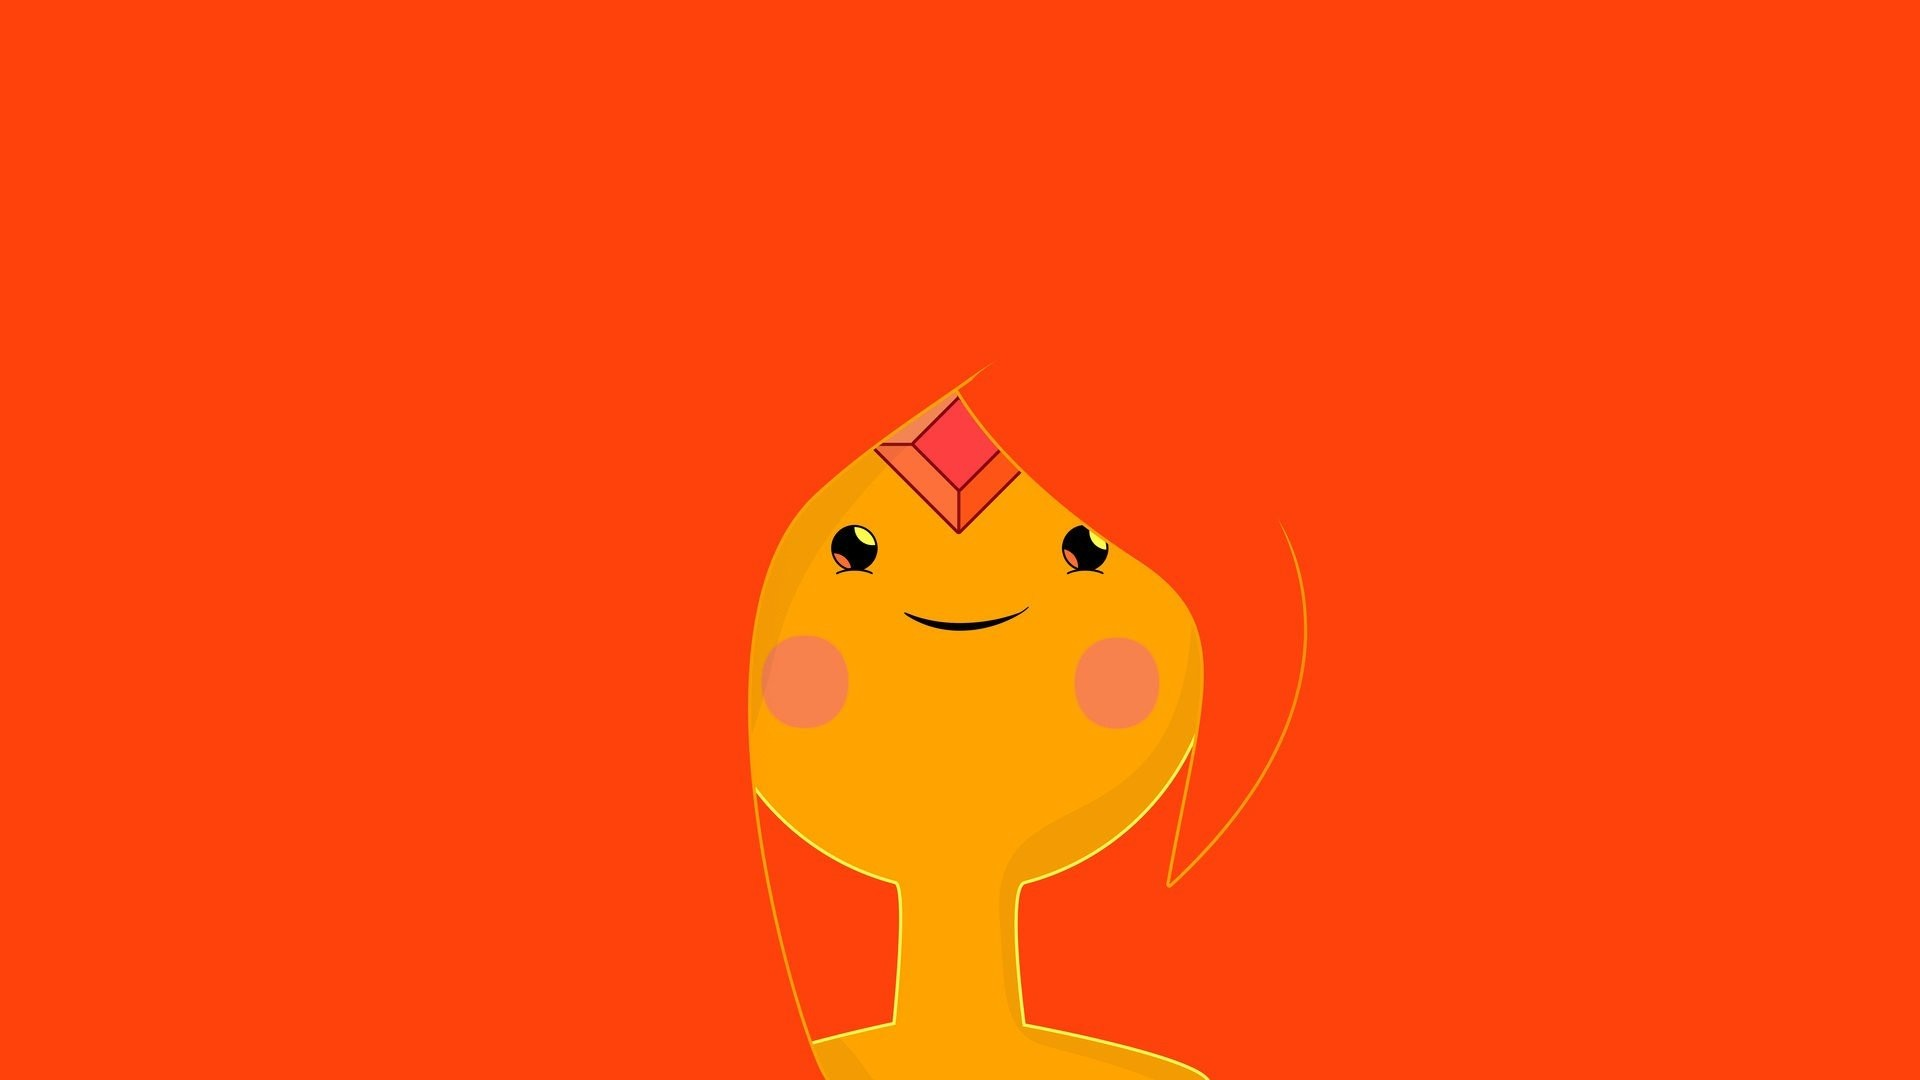 1920x1080 Adventure Time, Flame Princess, Minimalism